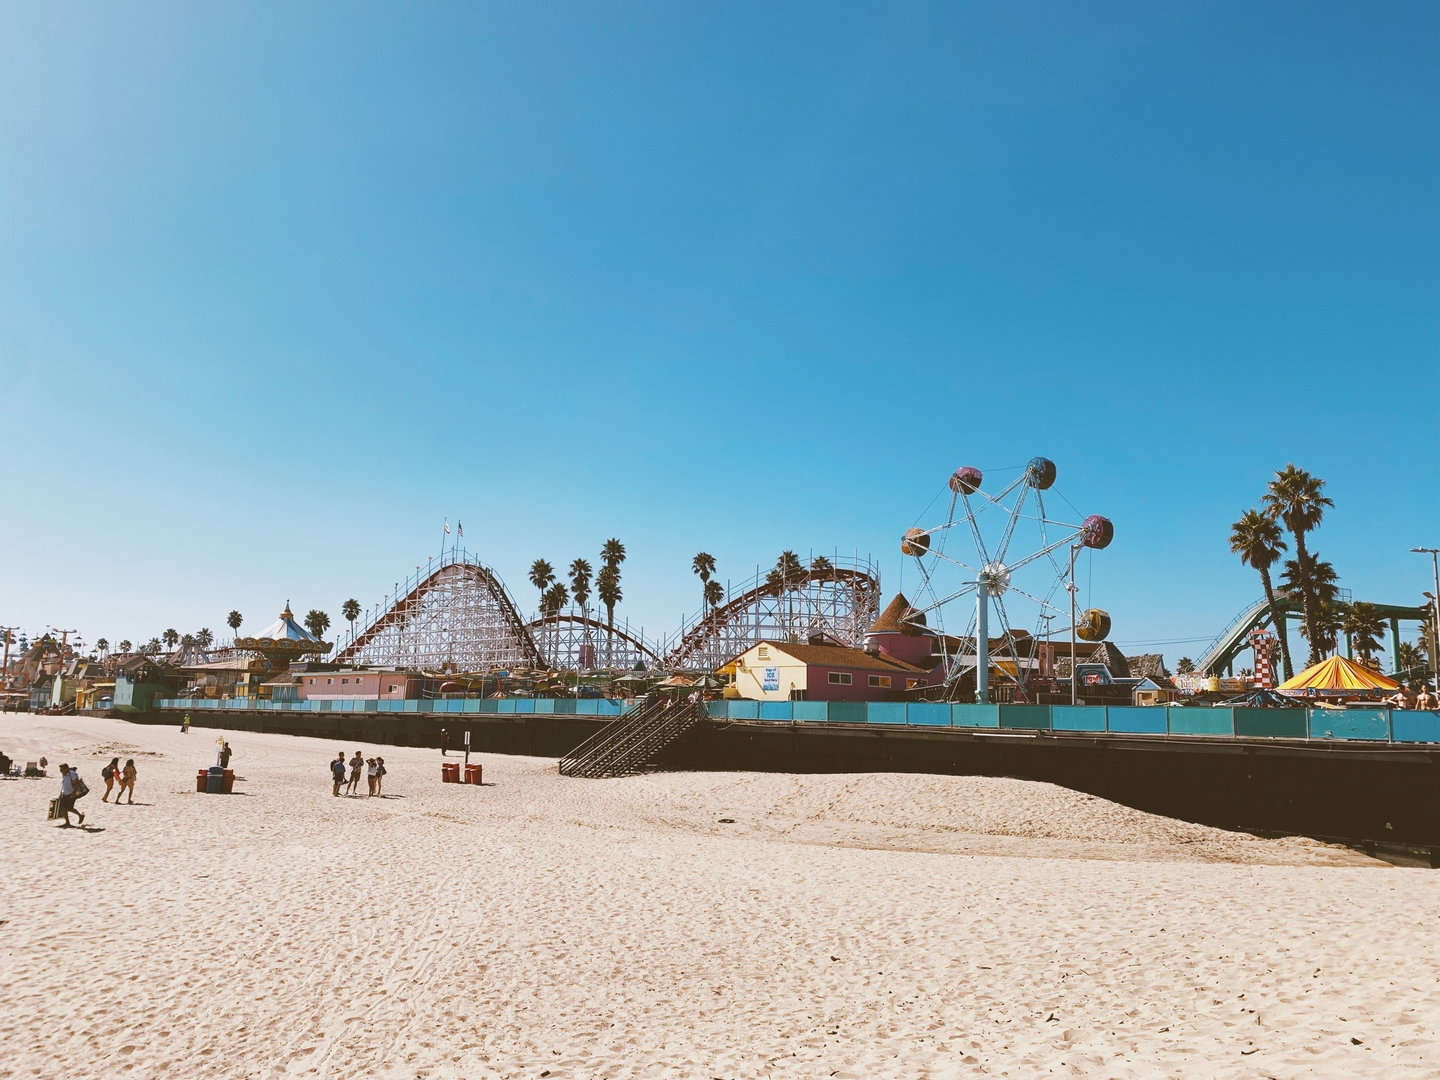 Santa Cruz Boardwalk Beach